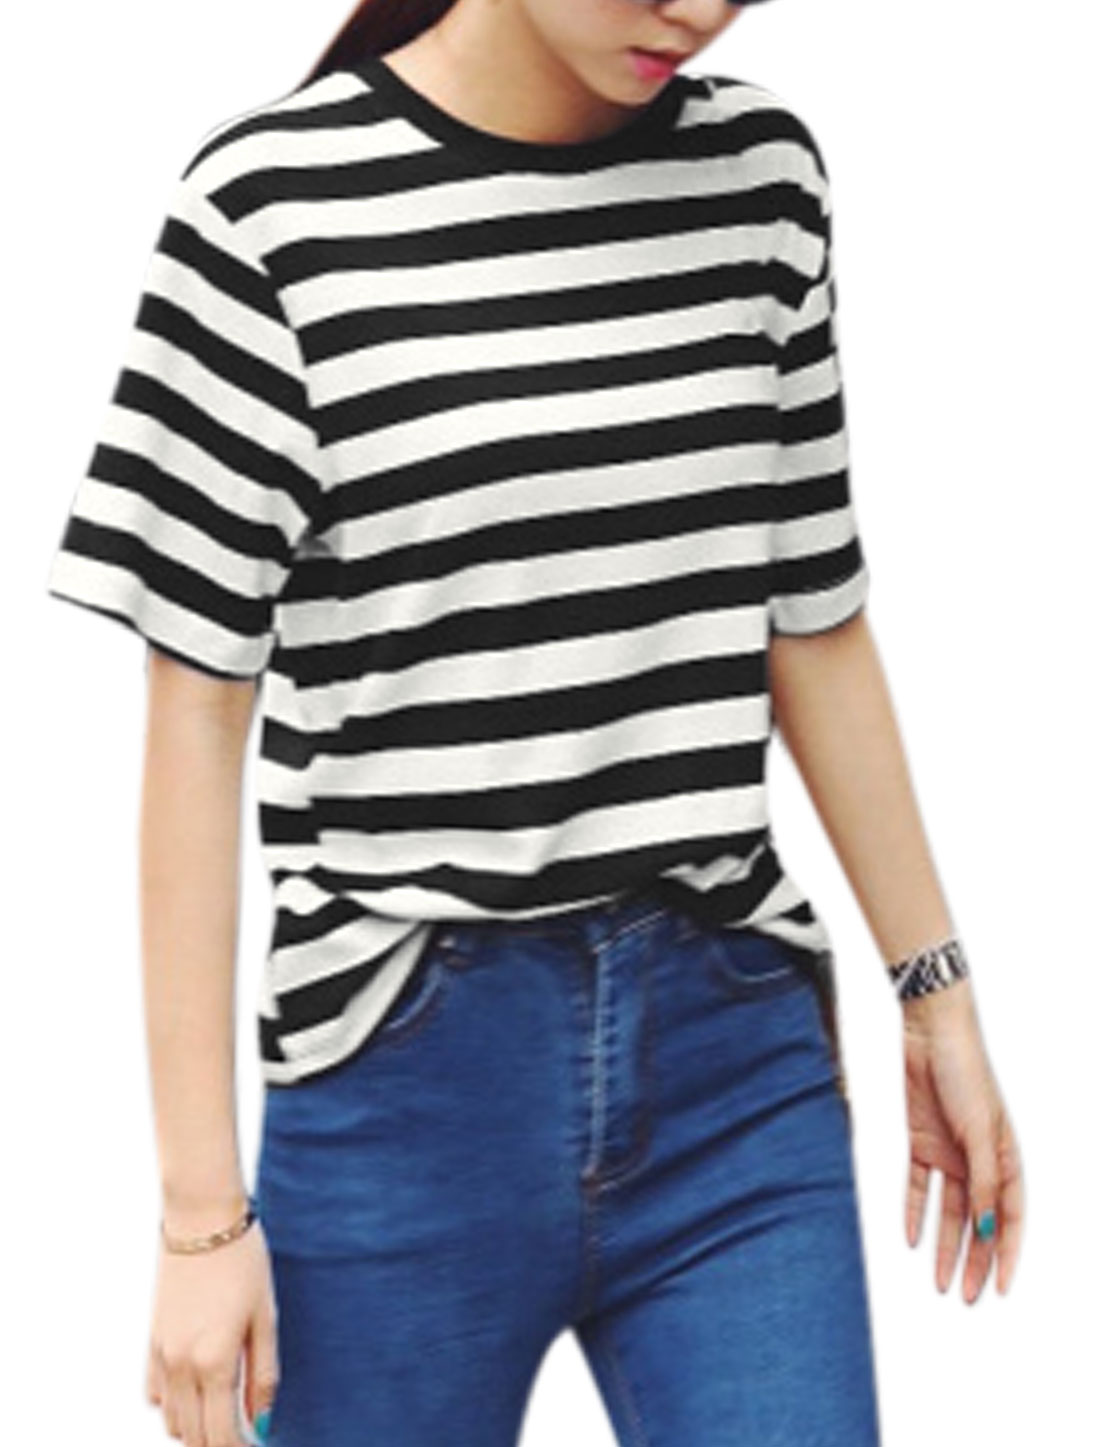 Woman Stripes Ribbed Round Neck Short Sleeves Tee Black White XS